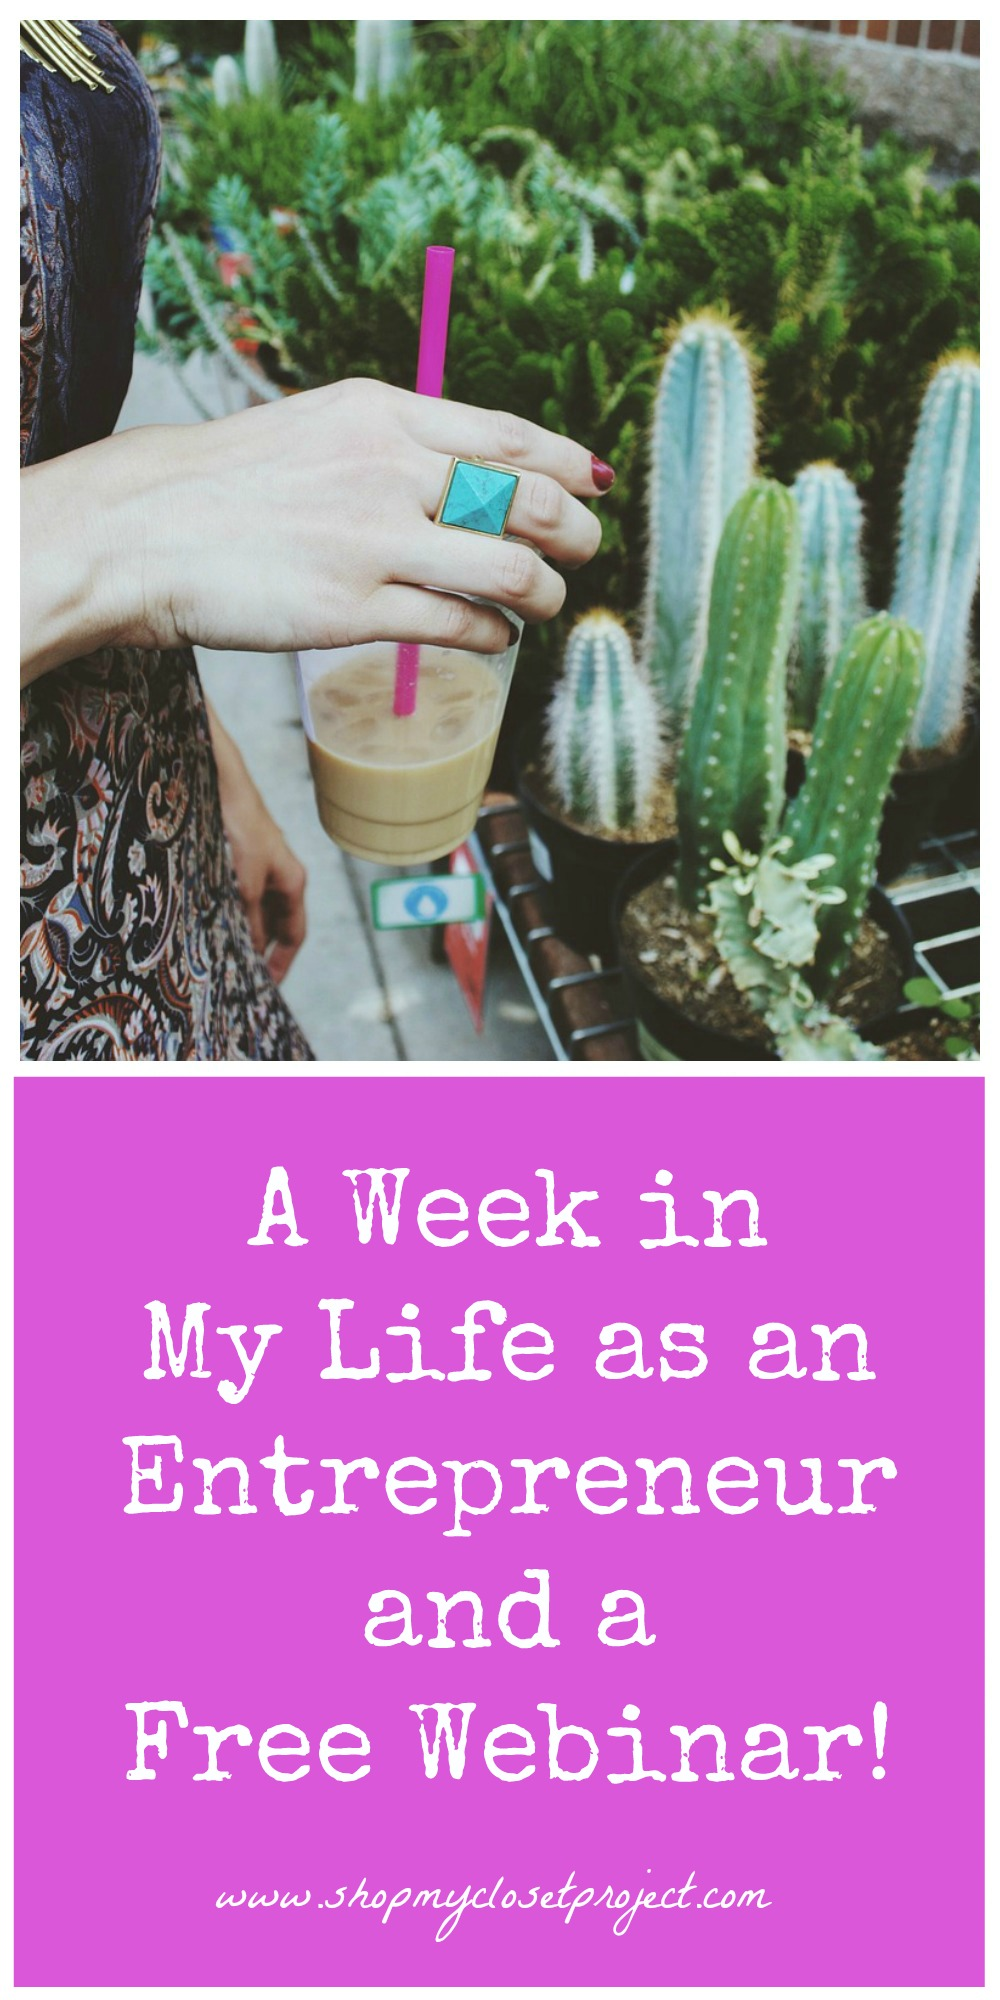 A Week in My Life as an Entrepreneur and a Free Webinar!